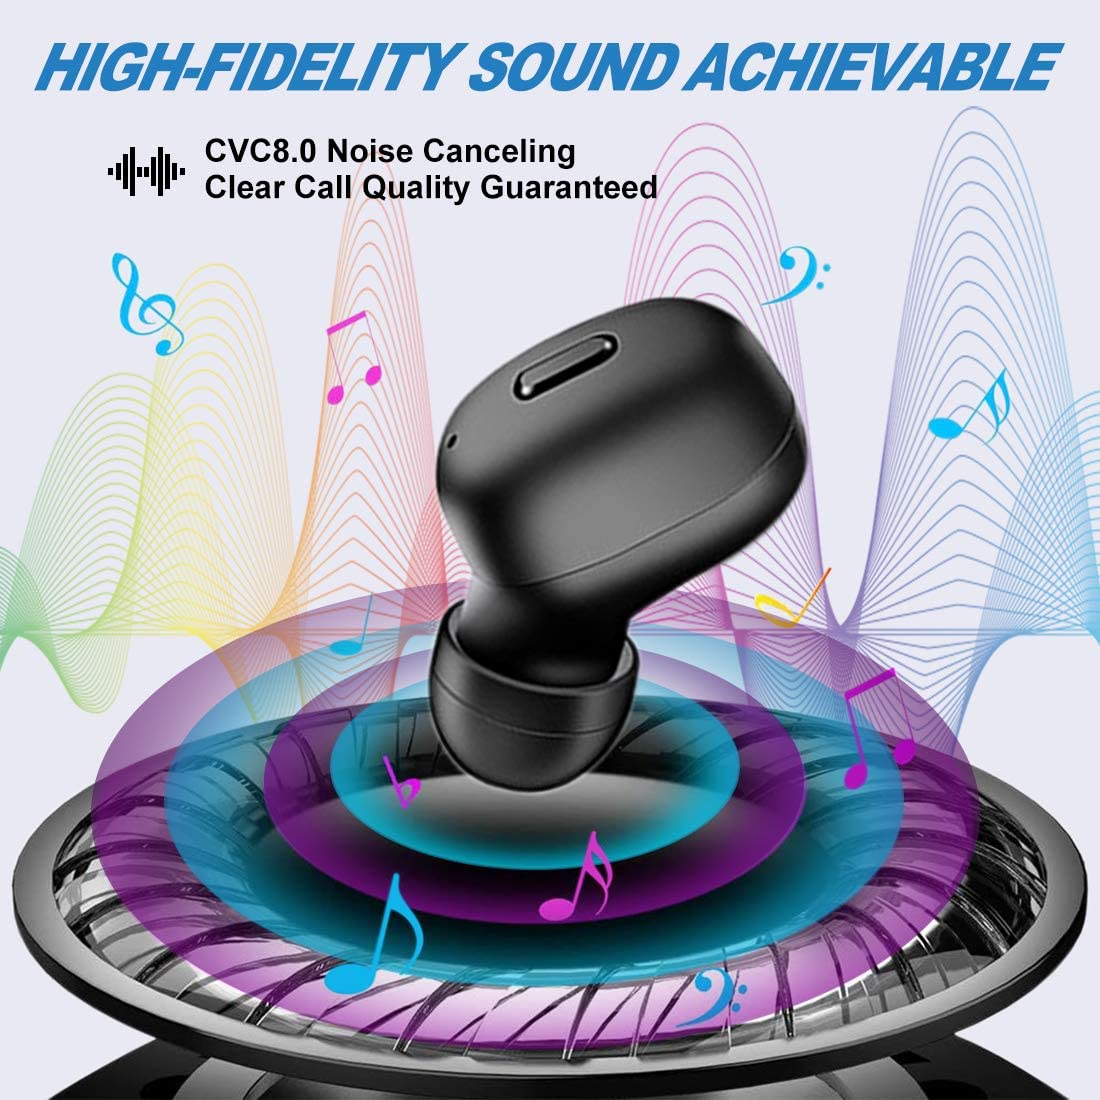 Black CVC 8.0 Noise Cancelling Earbud 12 Hours Playtime Wireless Earbuds Bluetooth 5.0 Headsets with Charging Case Single Bluetooth Earbud Built-in Mic Hi-Fi 3D Stereo Sound Earbud for Sport